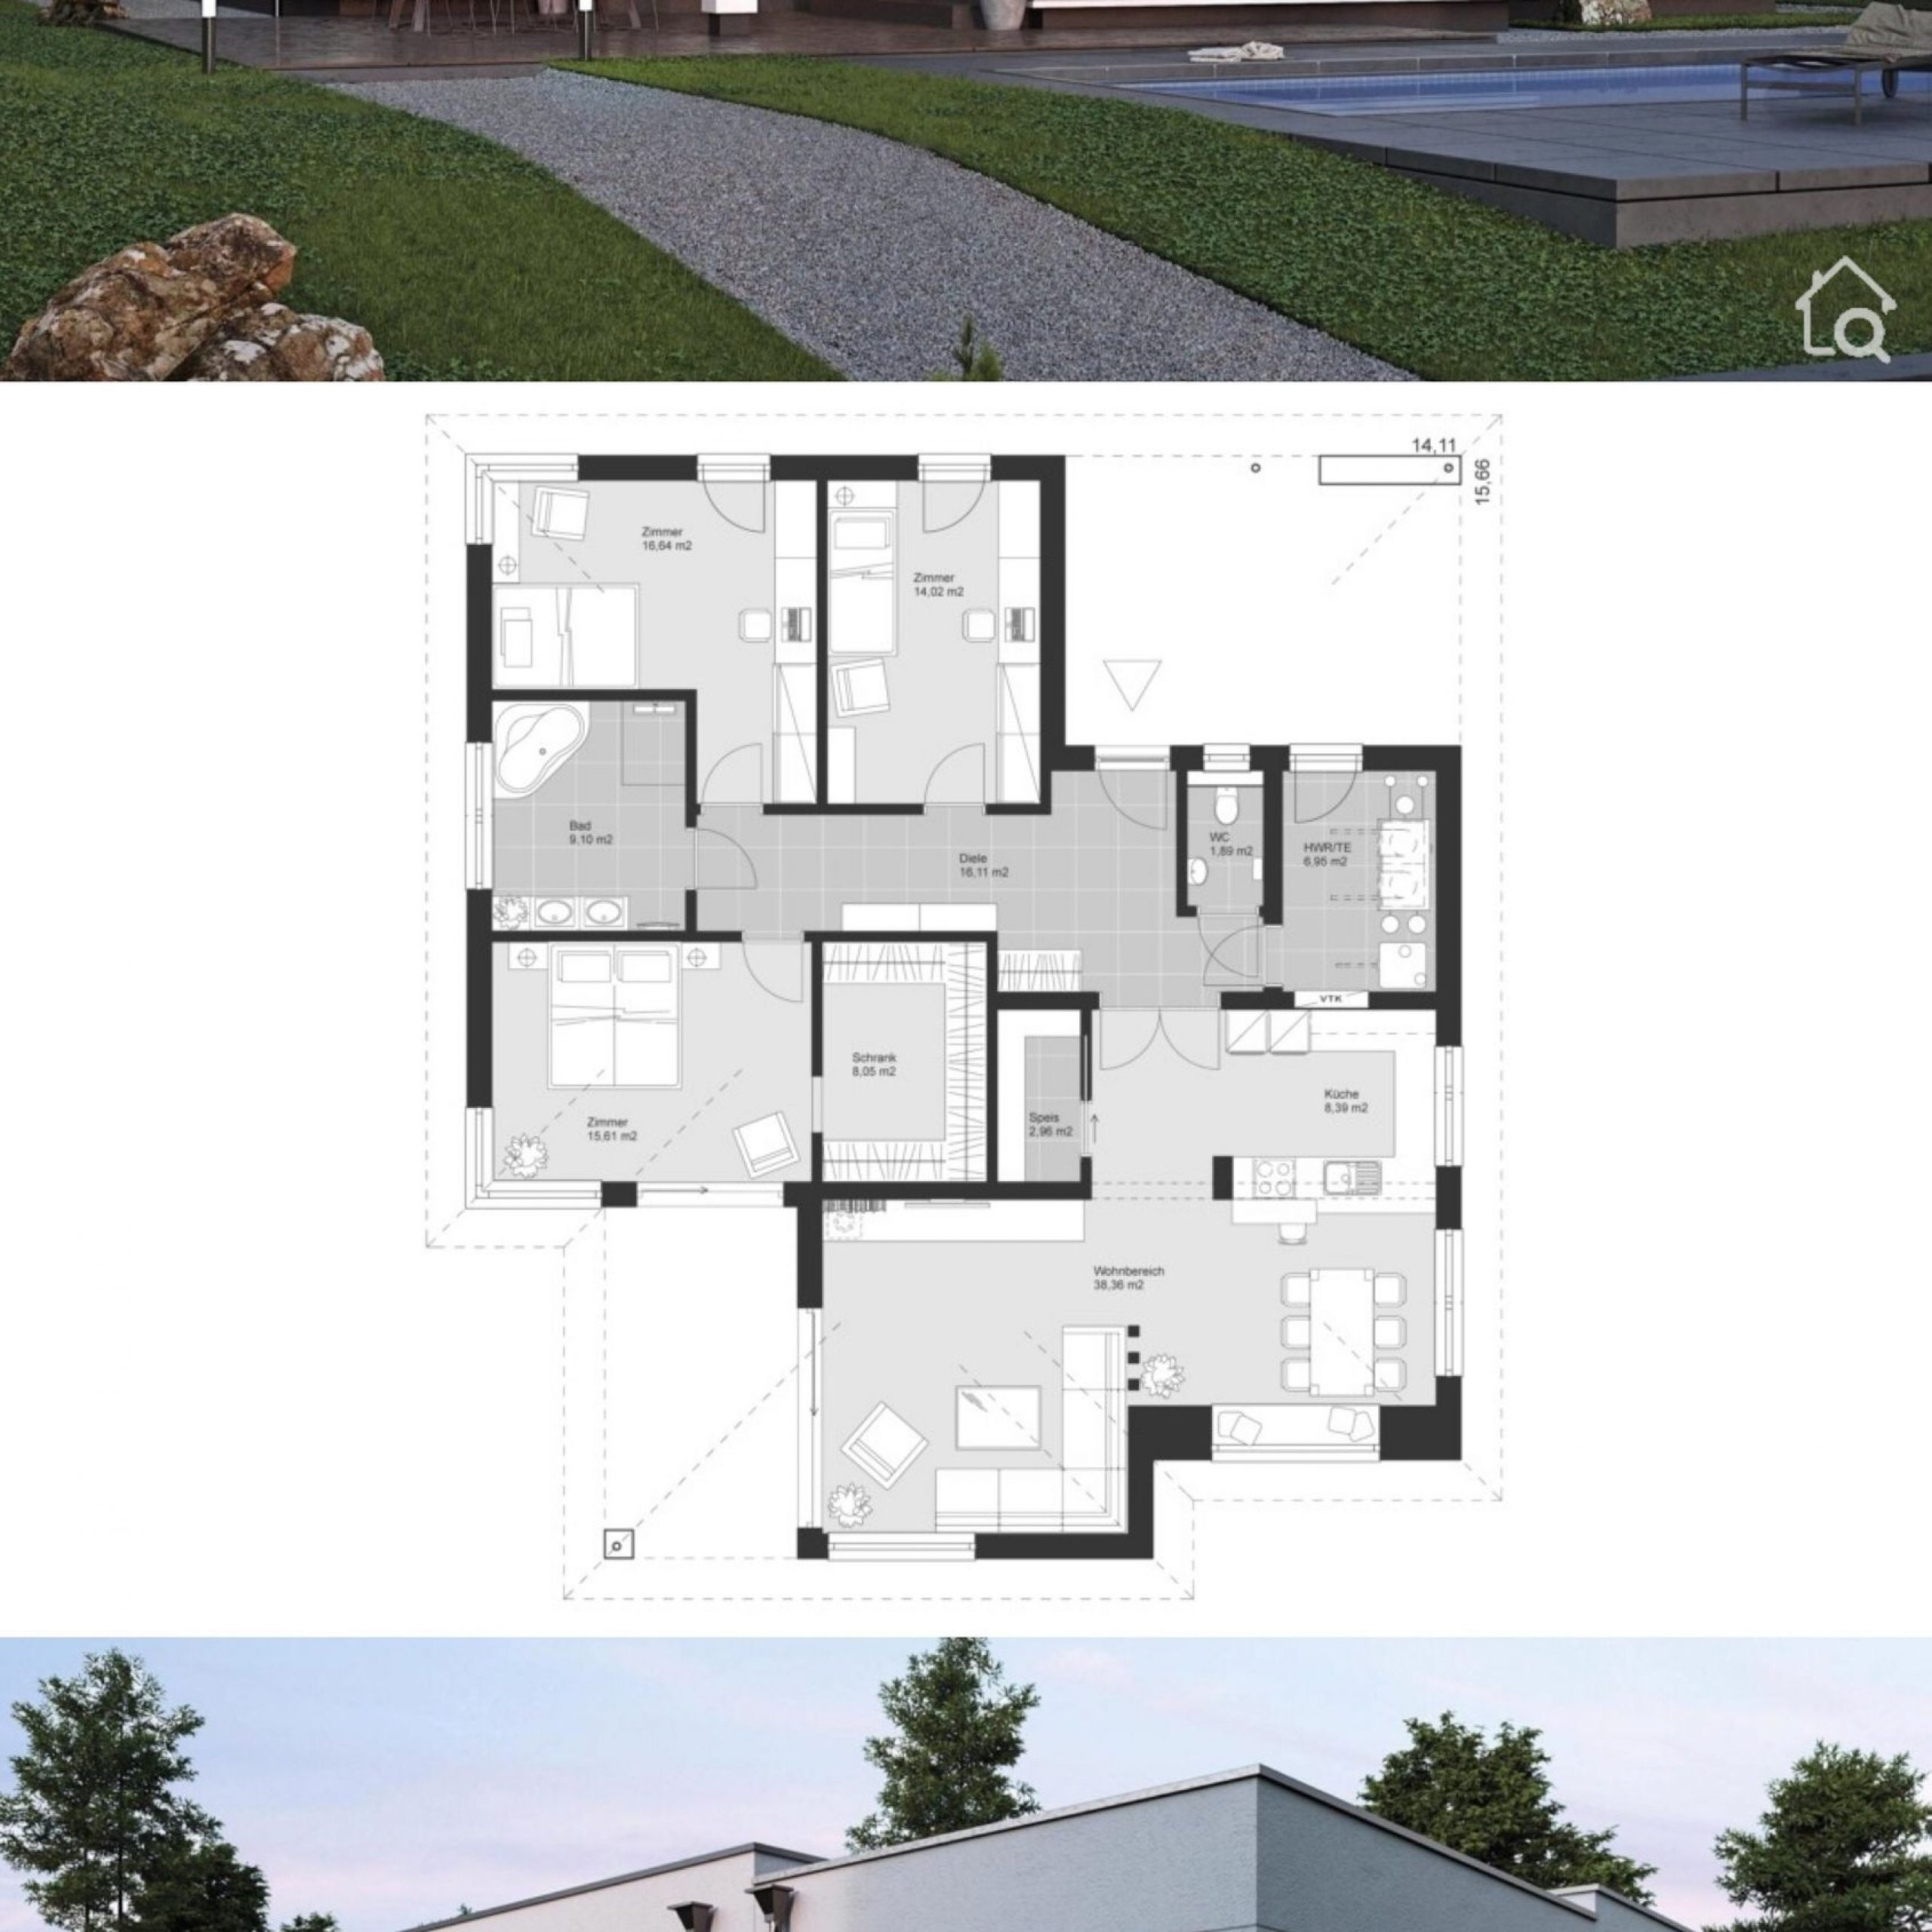 1d c0340af5dfea3ba4bf282cf2b on Modern House Designs Pictures Gallery id=1005755